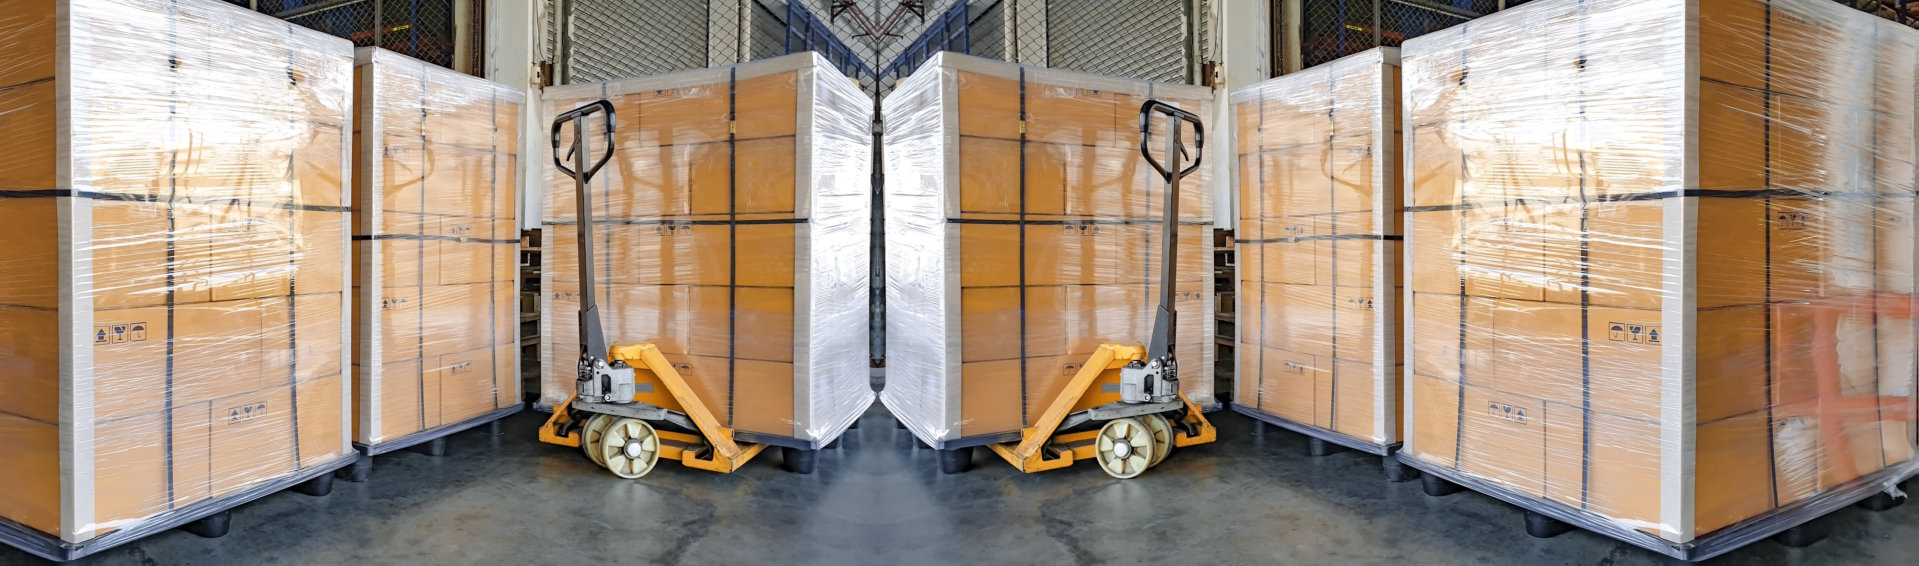 Freight Pallets